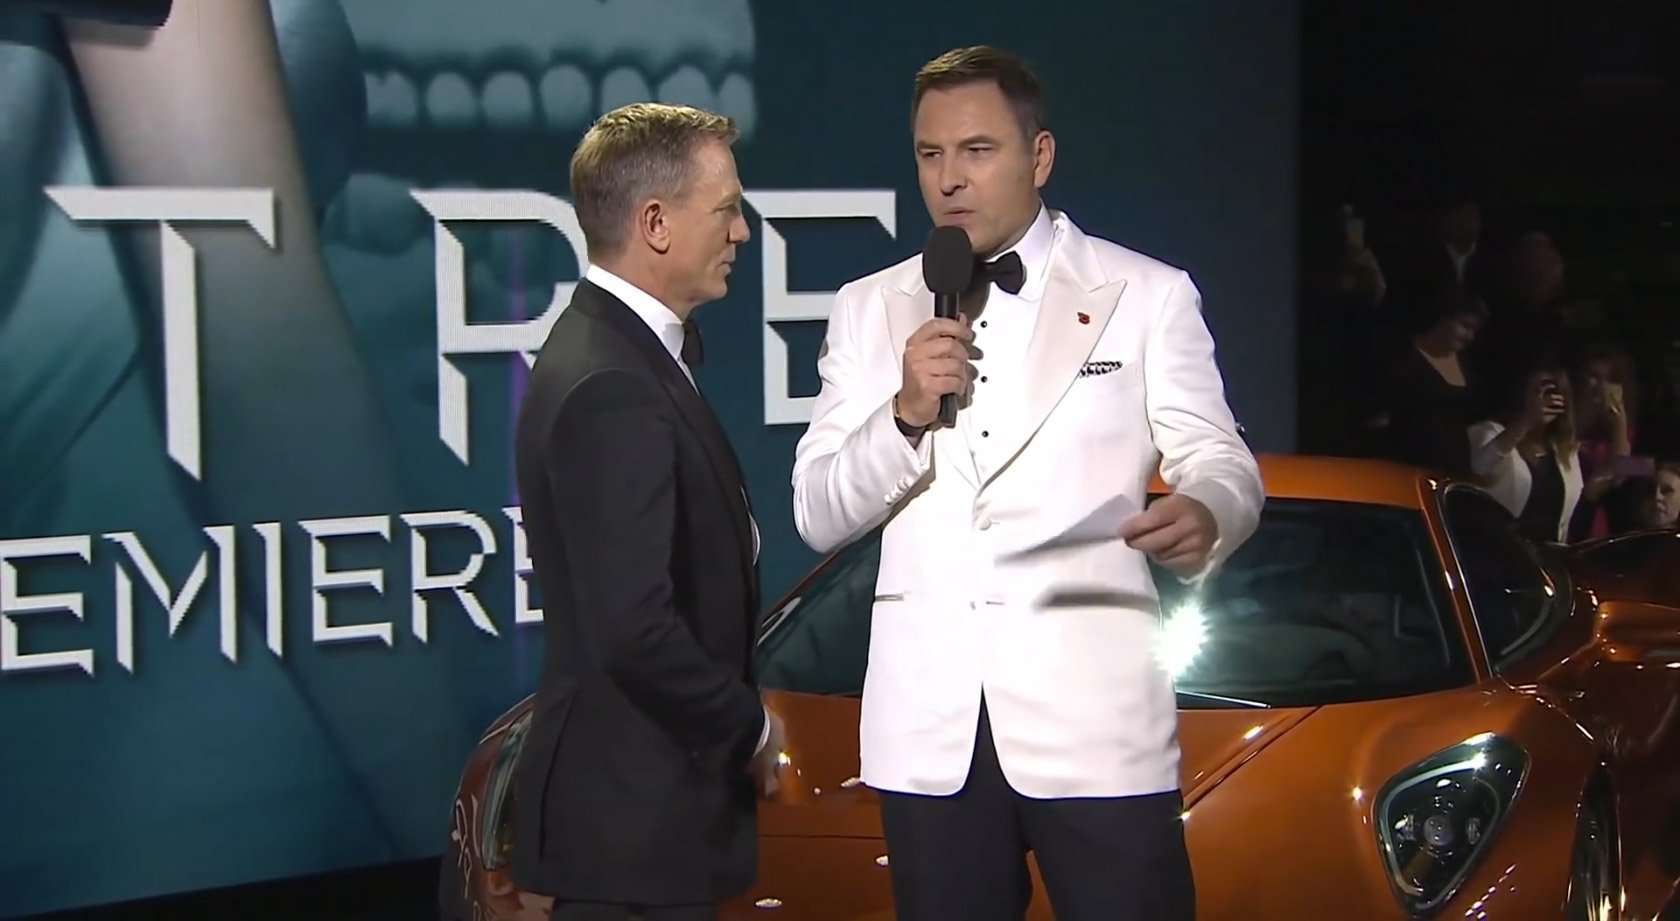 Daniel Craig with David Walliams, who is wearing the Tom Ford dinner jacket from Spectre